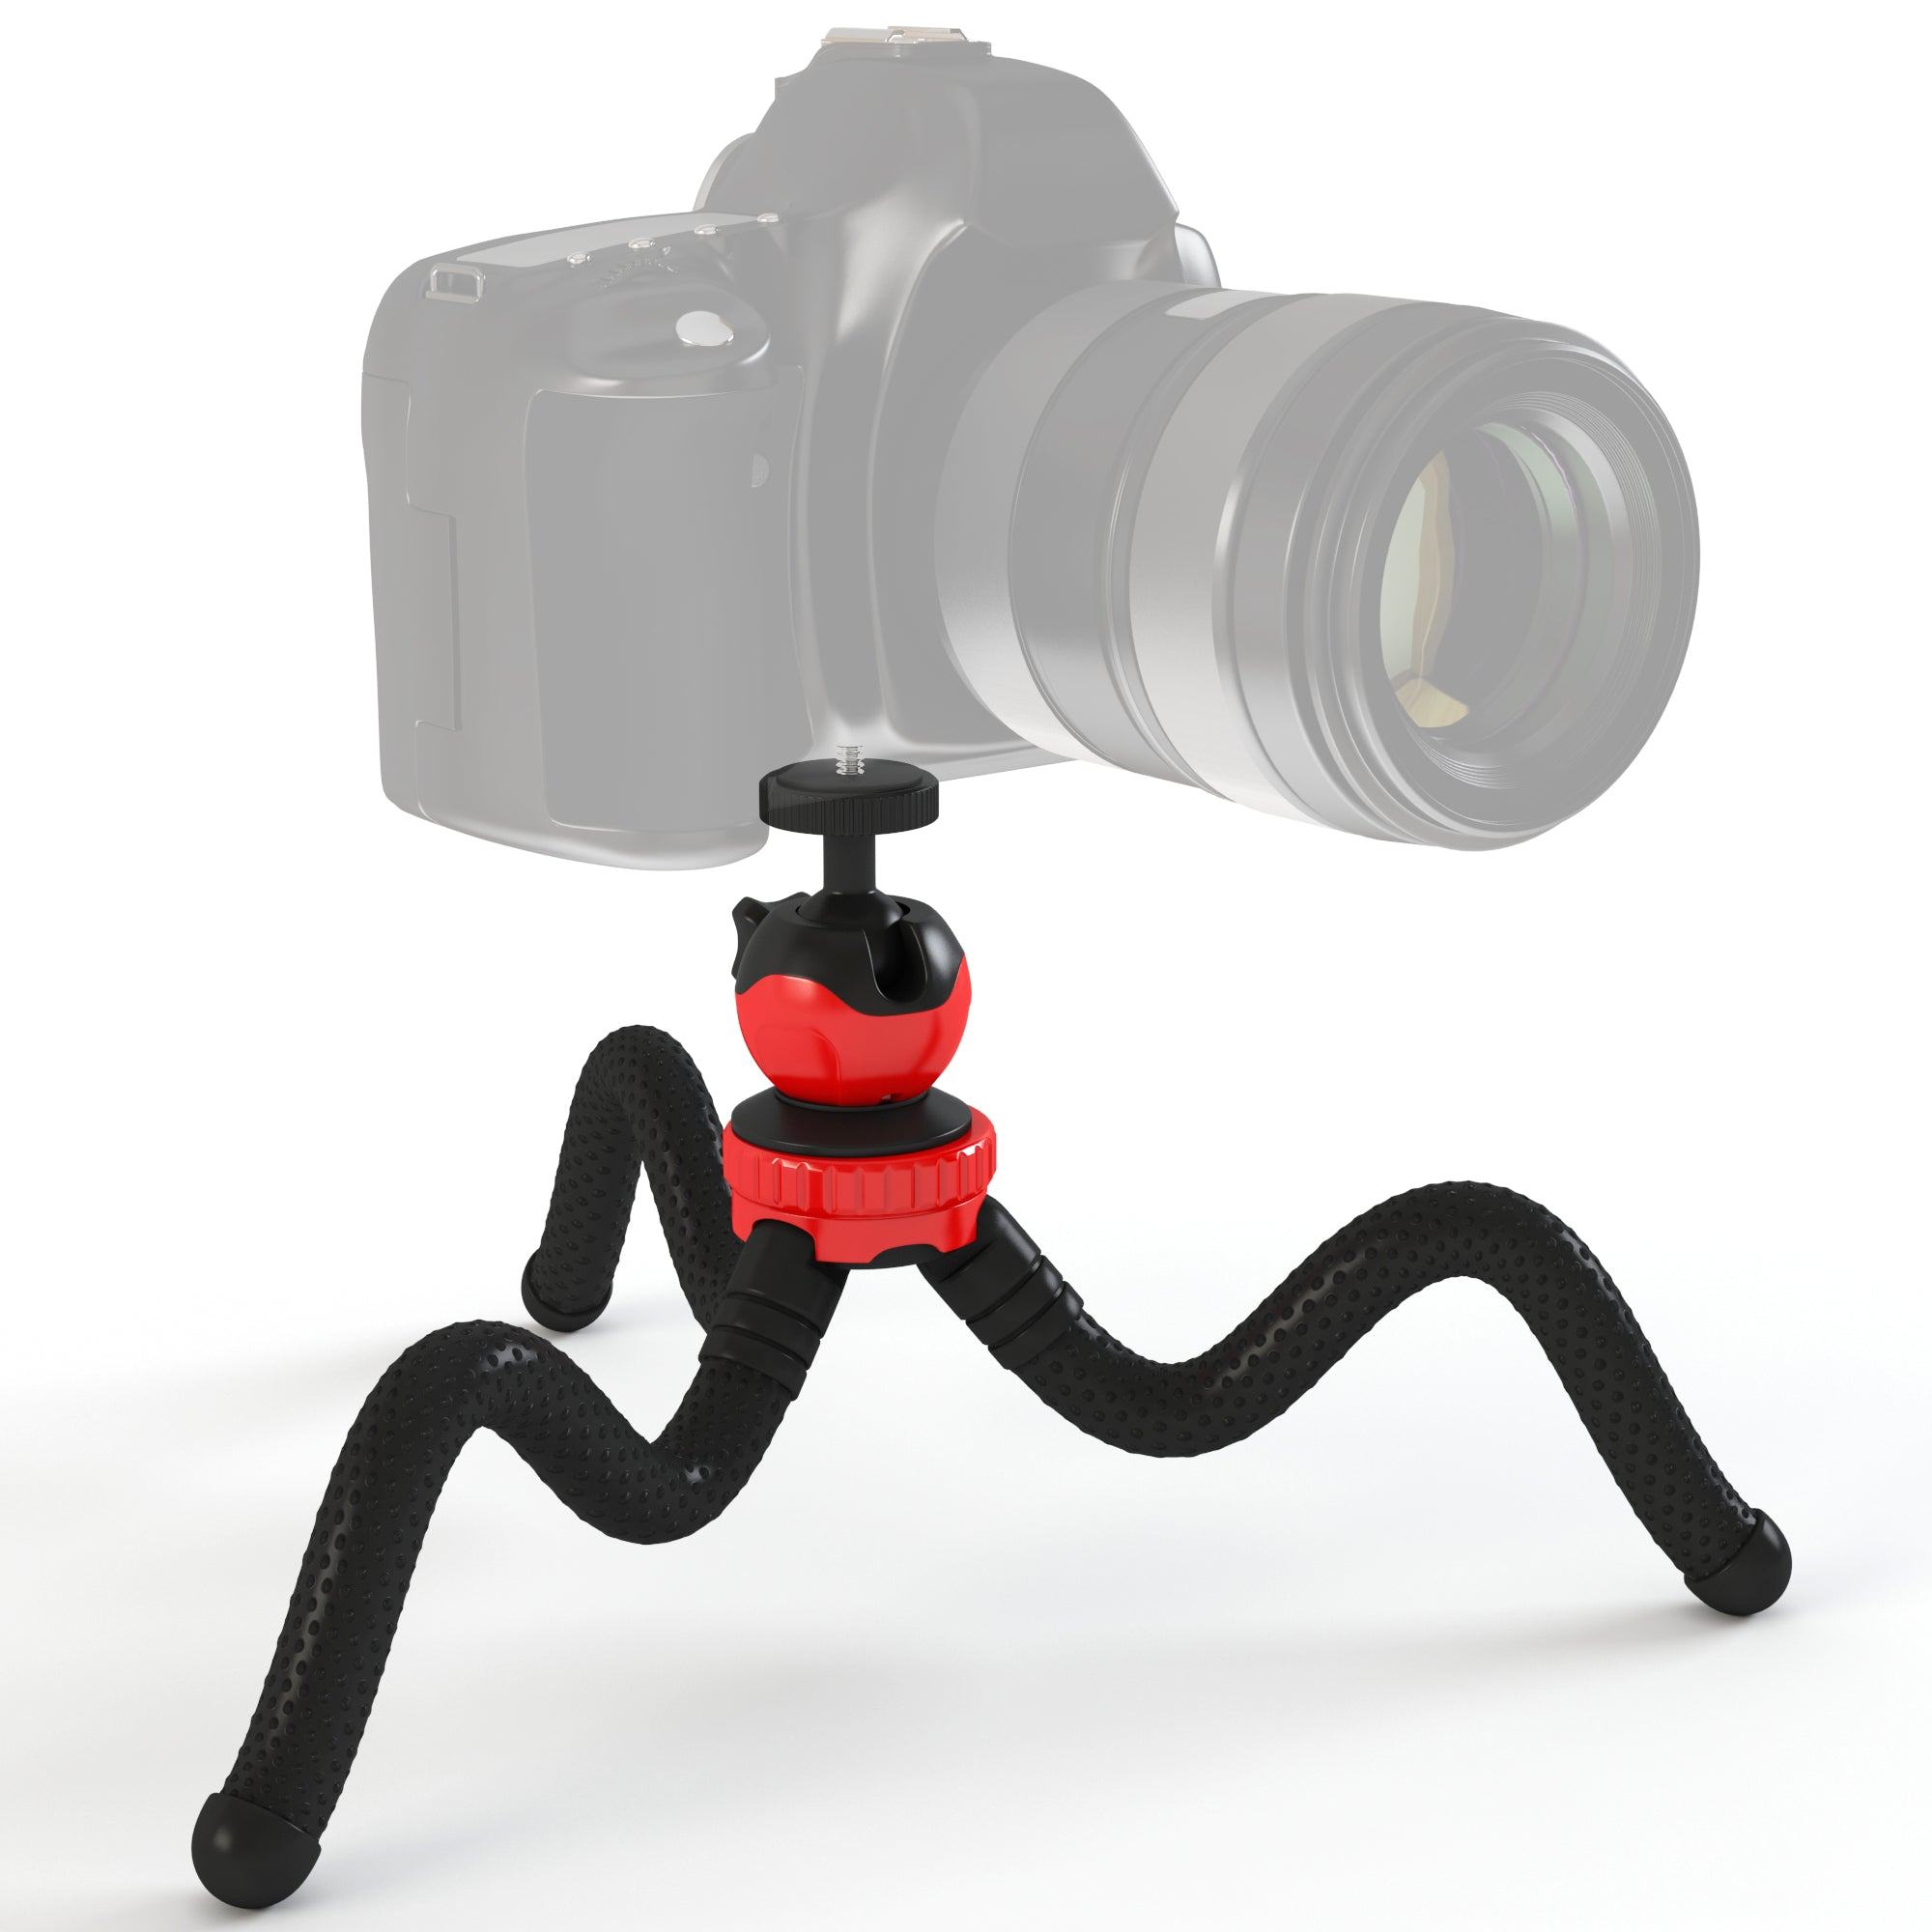 Bendable, Light Weight TRIPOD - STUFF 4 CAMERA